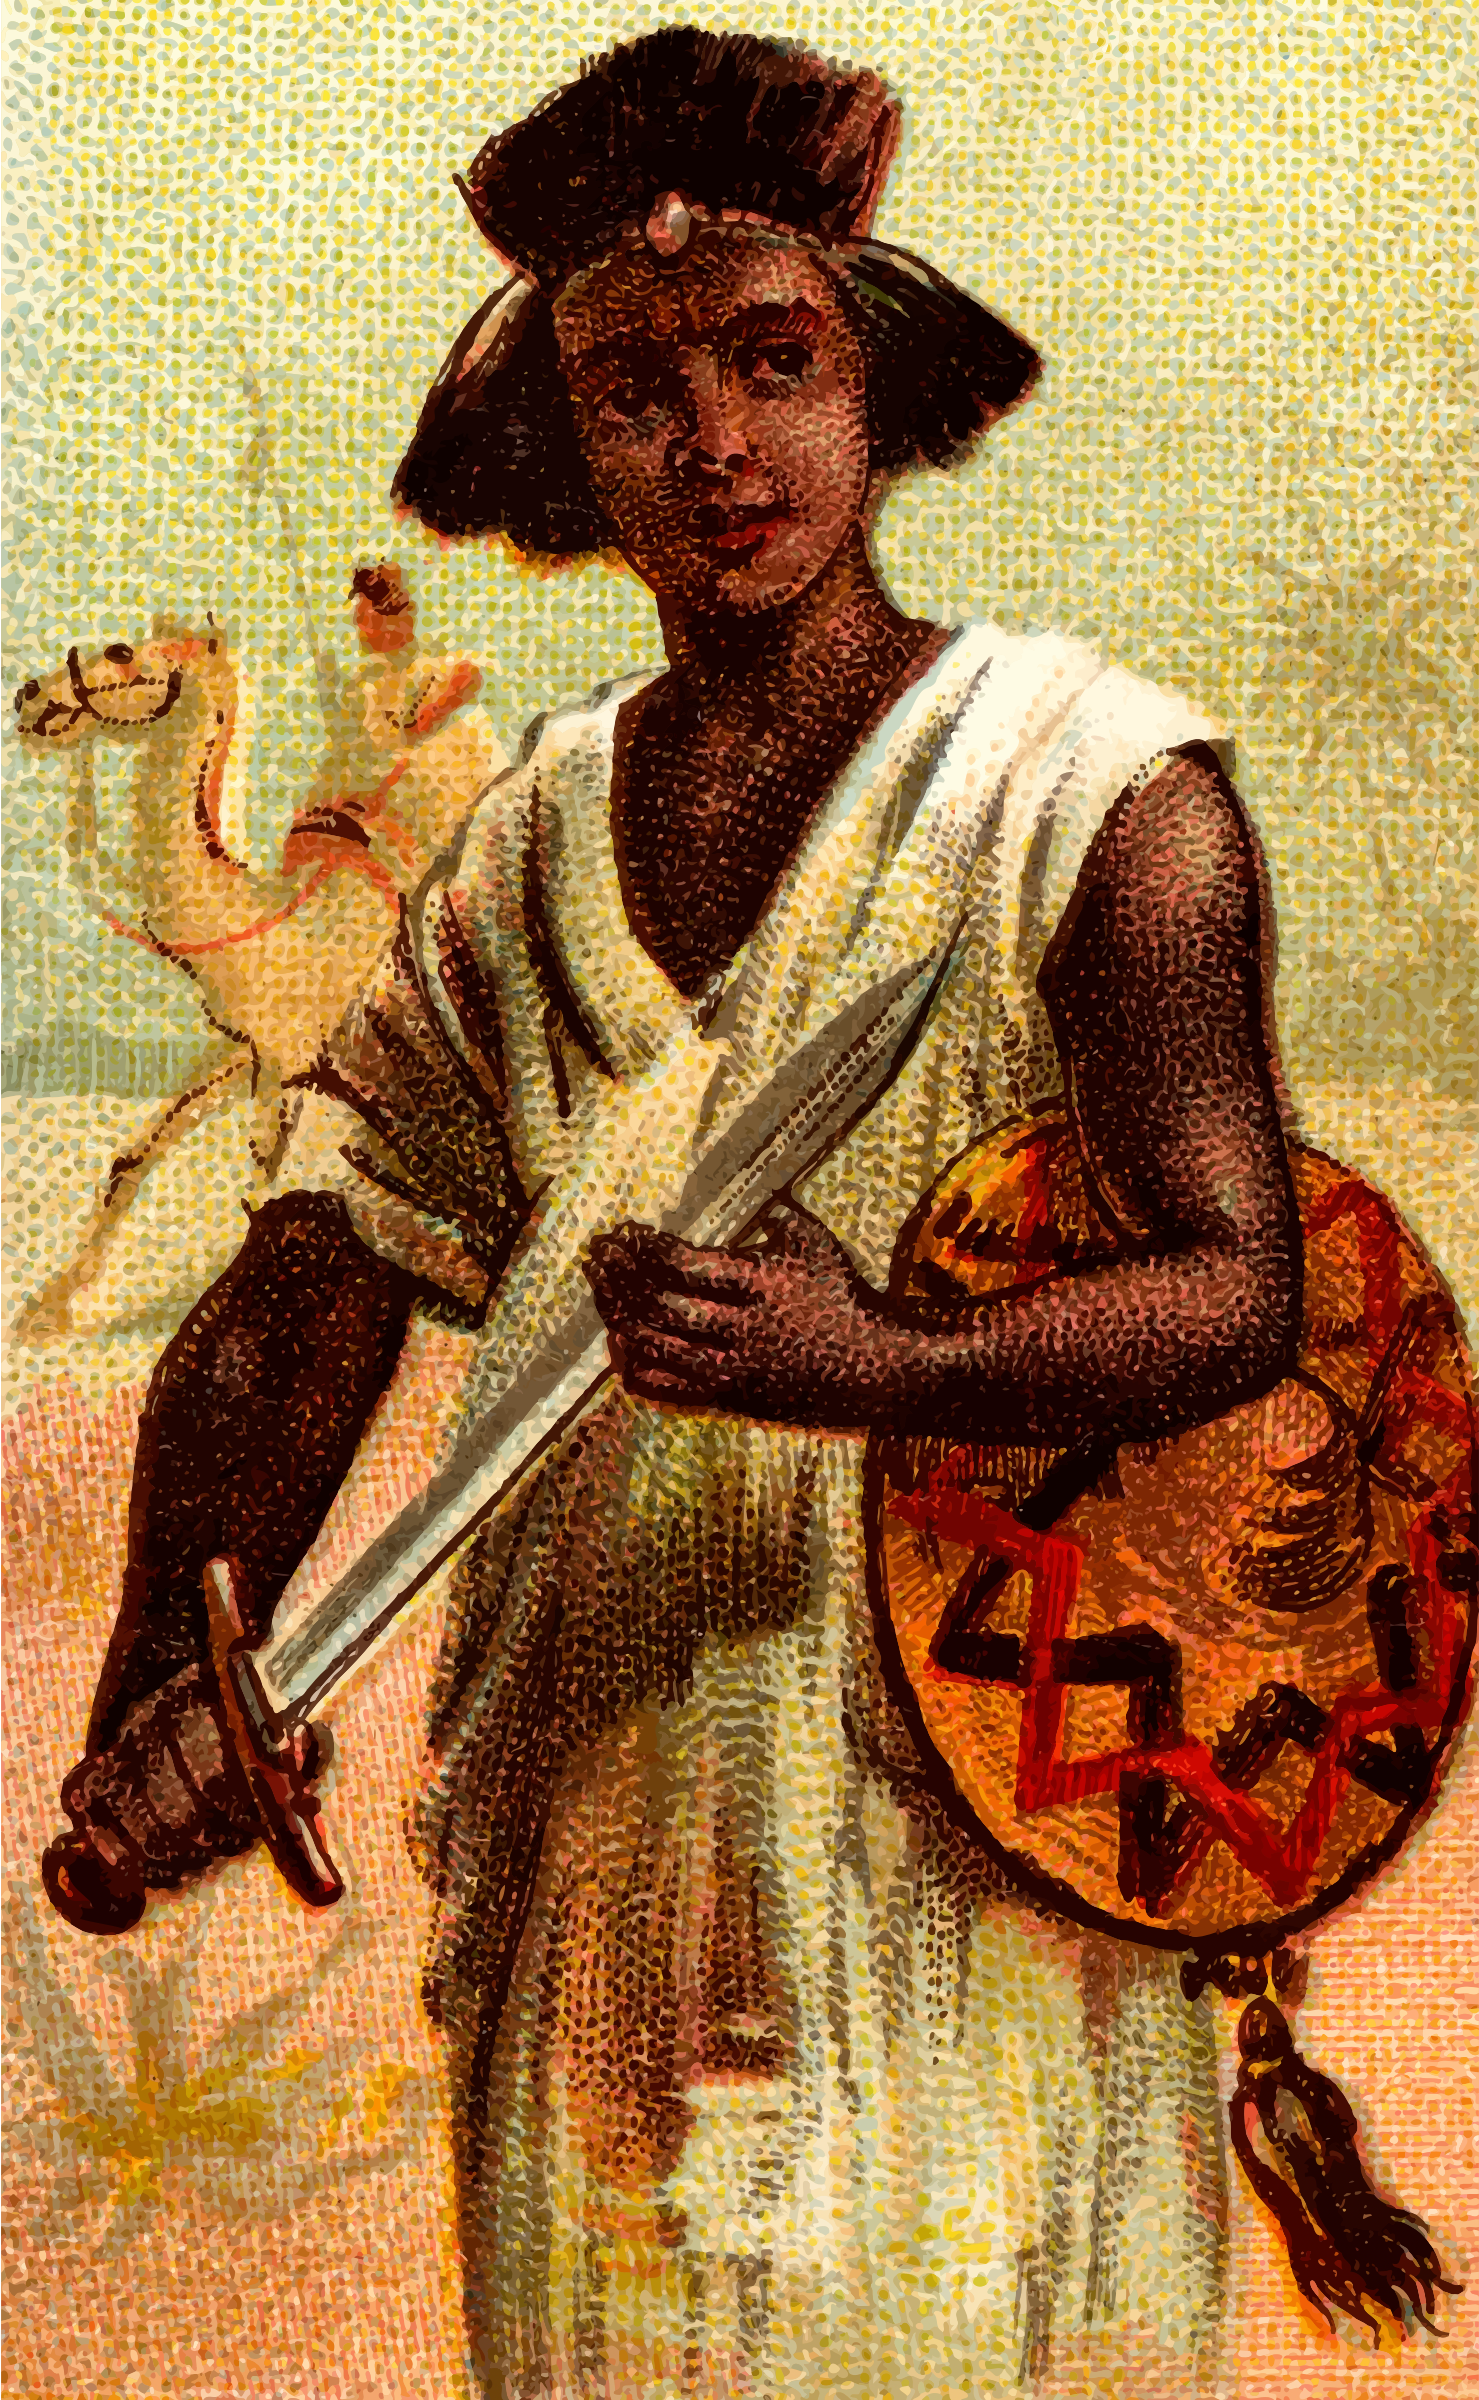 Cigarette card - Nubian Sword by Firkin